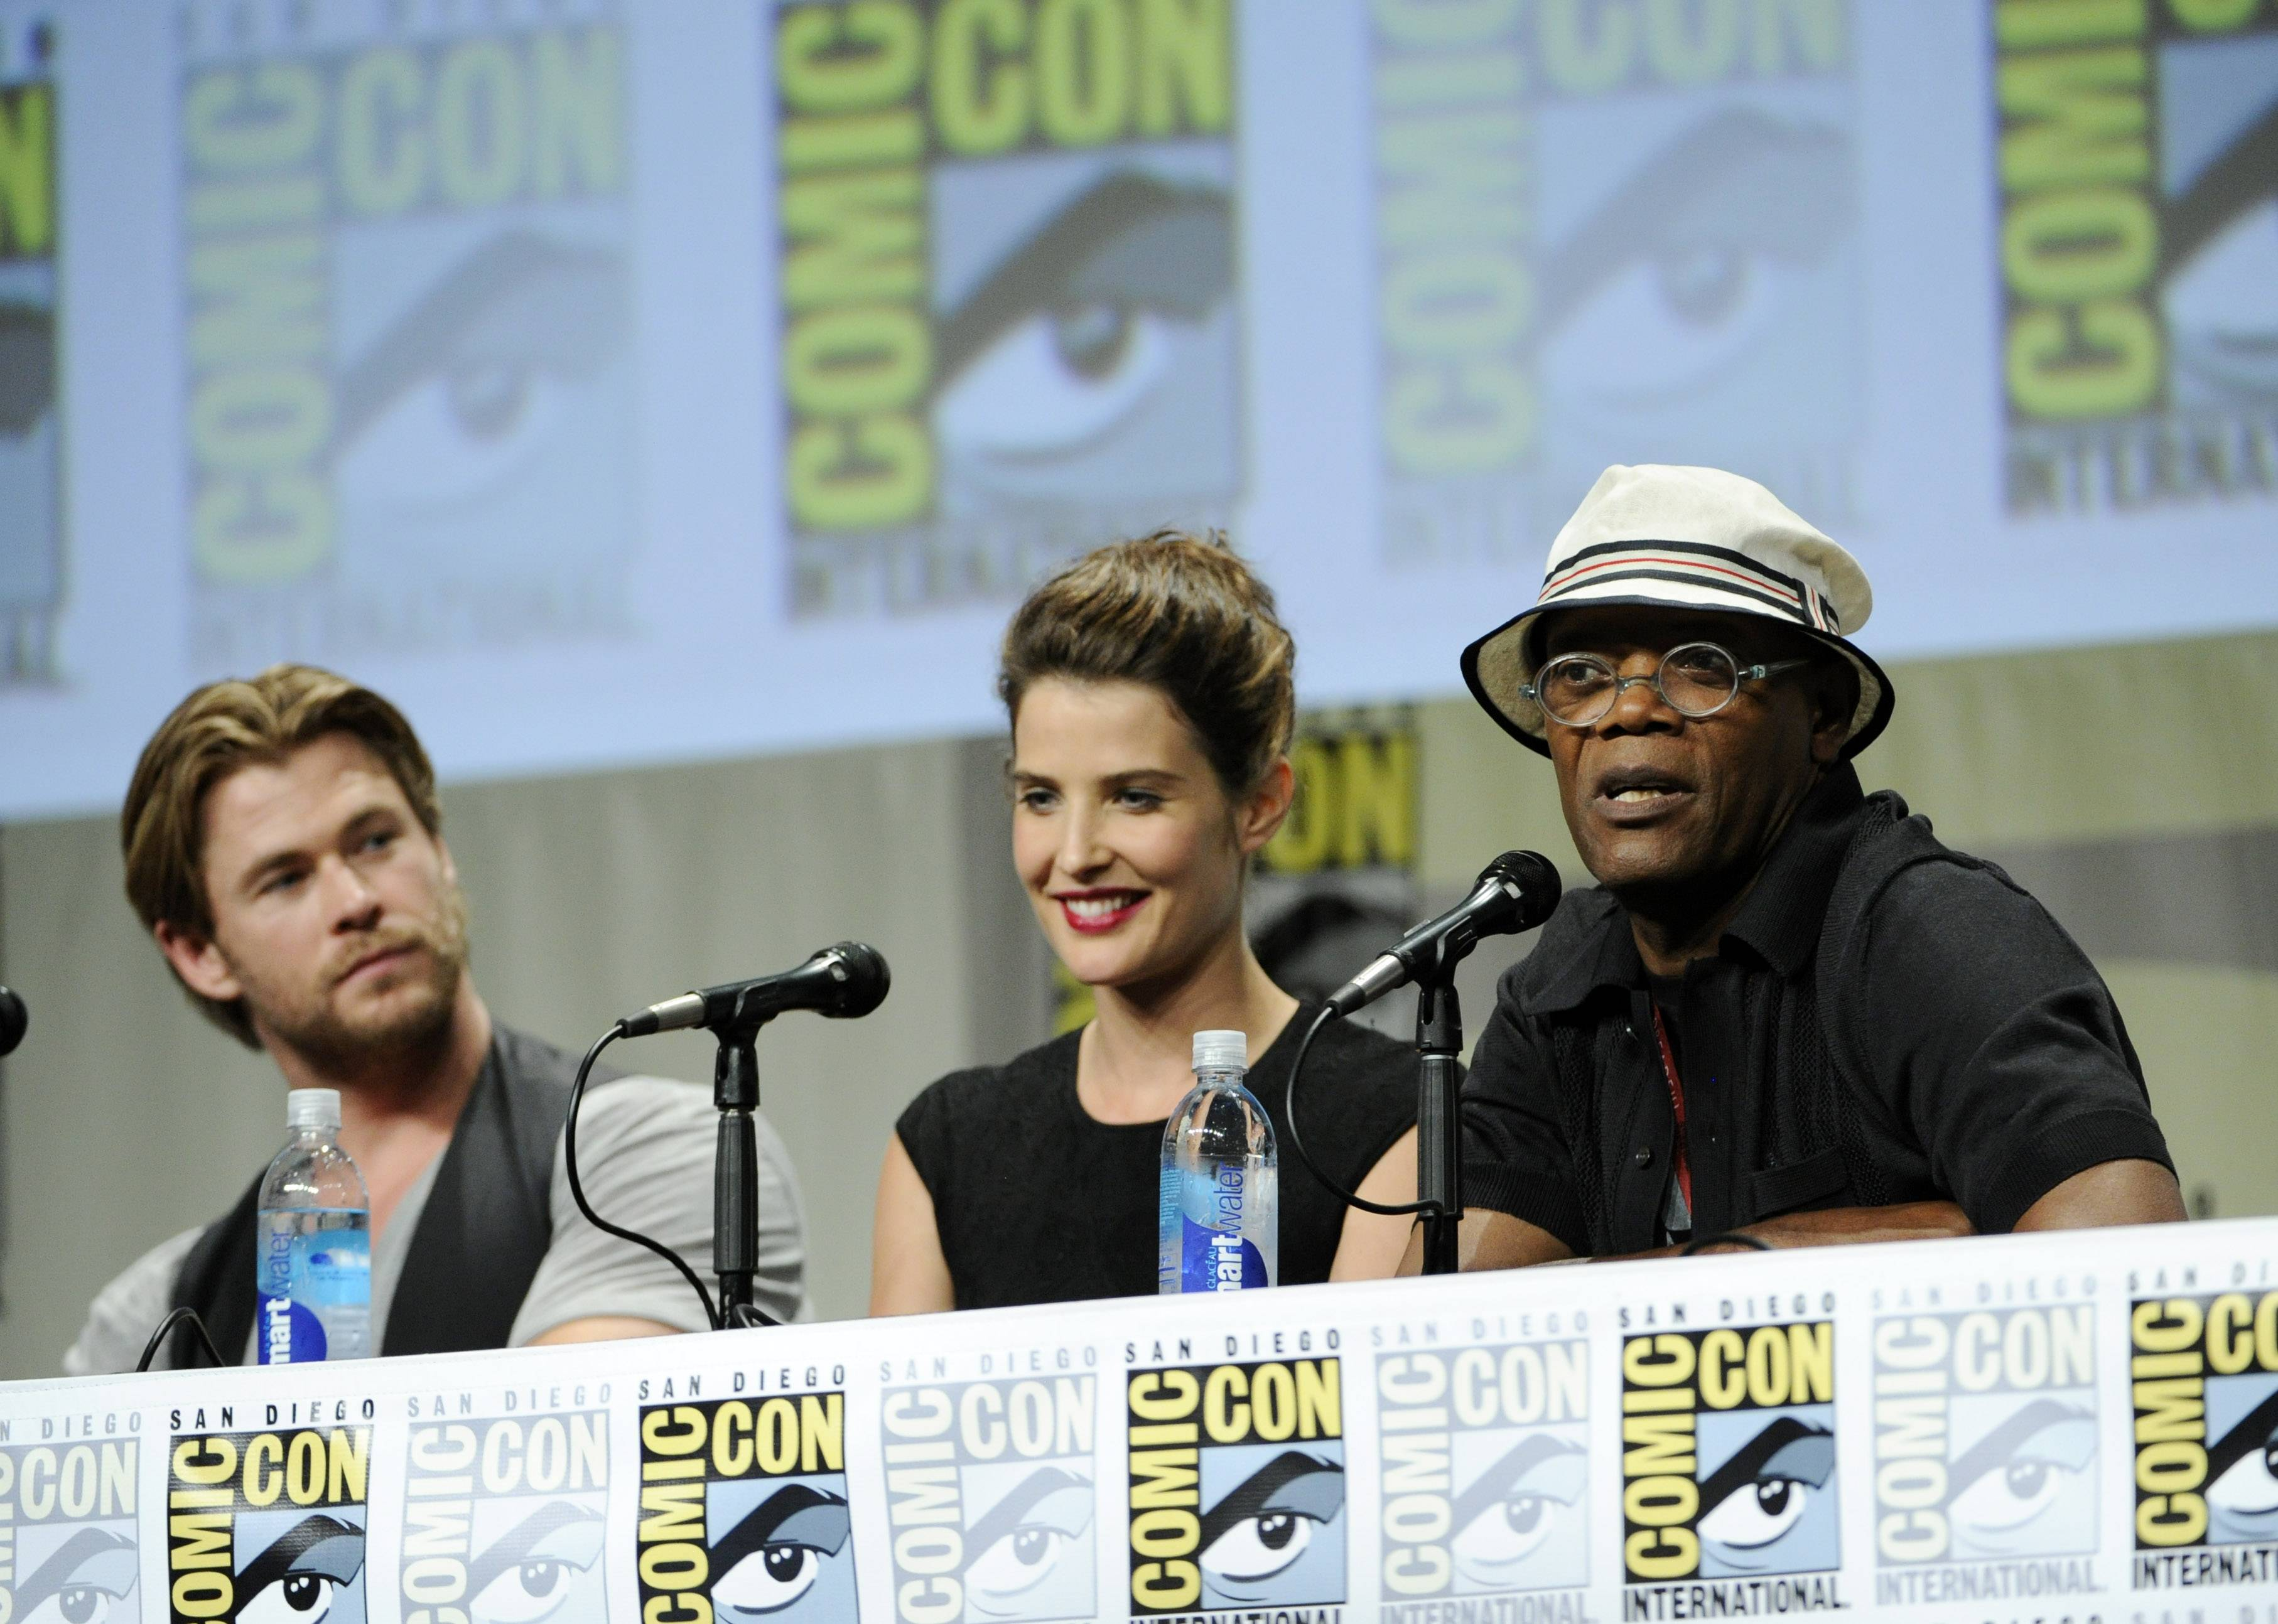 Actor Samuel L. Jackson, right, answers a question as fellow actors Chris Hemsworth, left, and Cobie Smulders sit near during the Marvel panel at Comic-Con International on Saturday in San Diego.